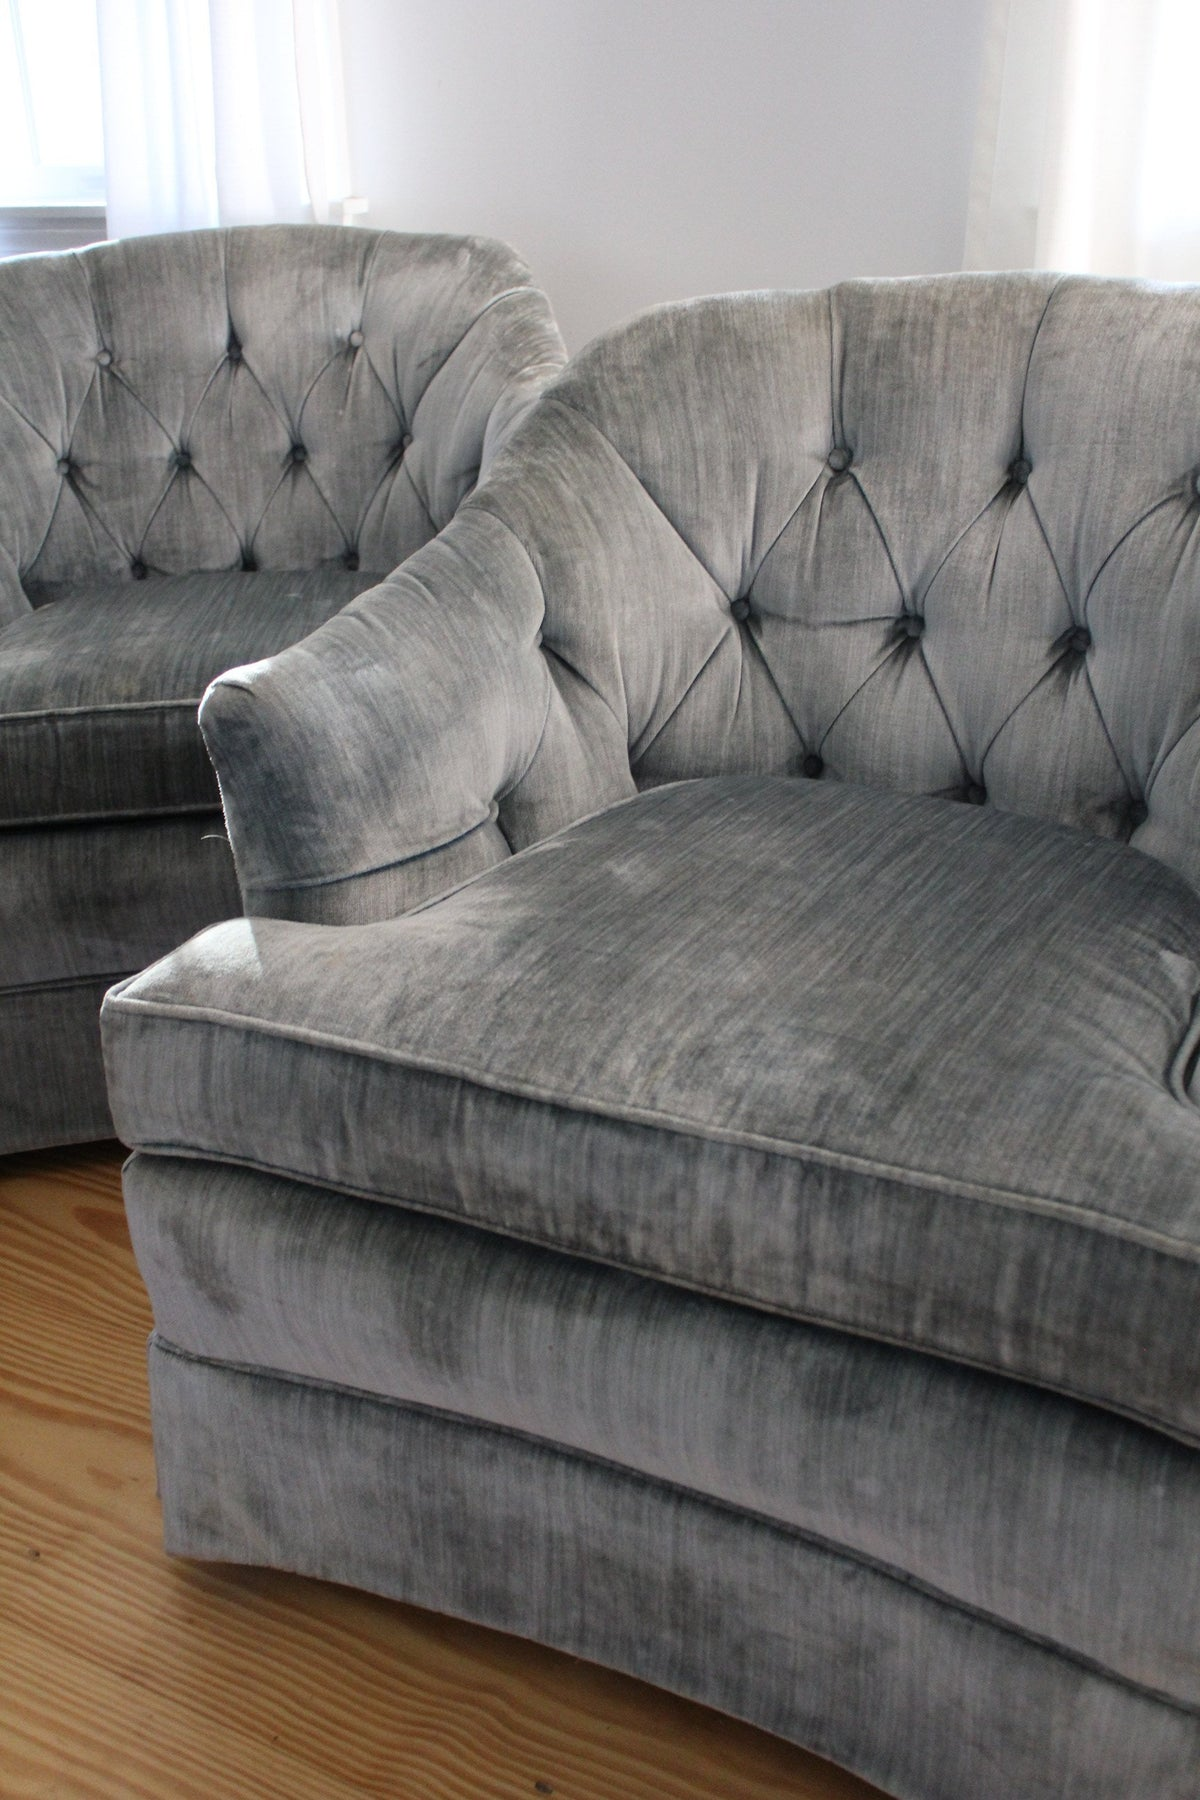 Pair of Vintage Chairs - Diamonds & Rust